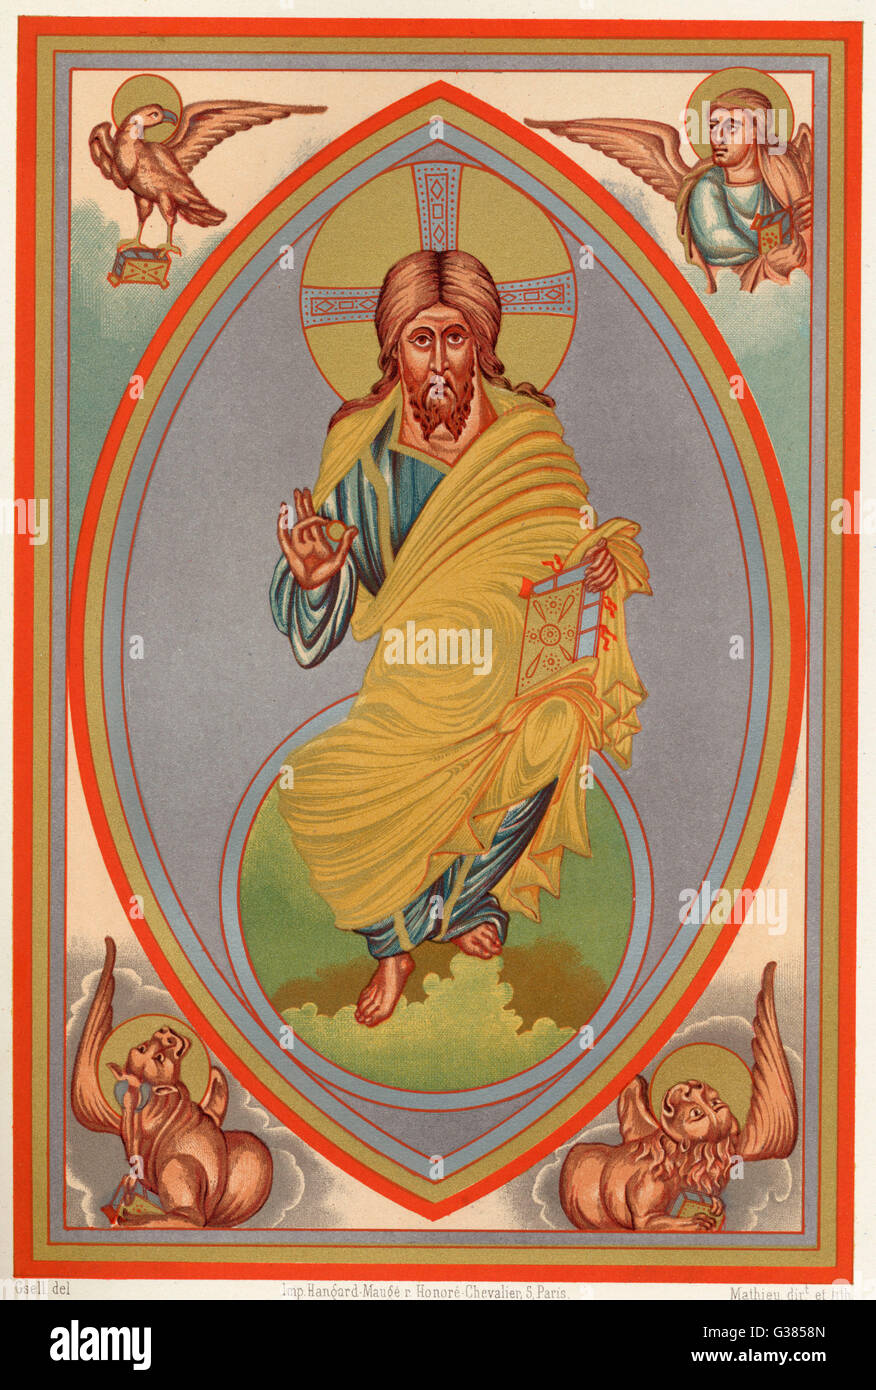 Jesus Of Nazareth Depicted As The King Of Glory With Symbols Of